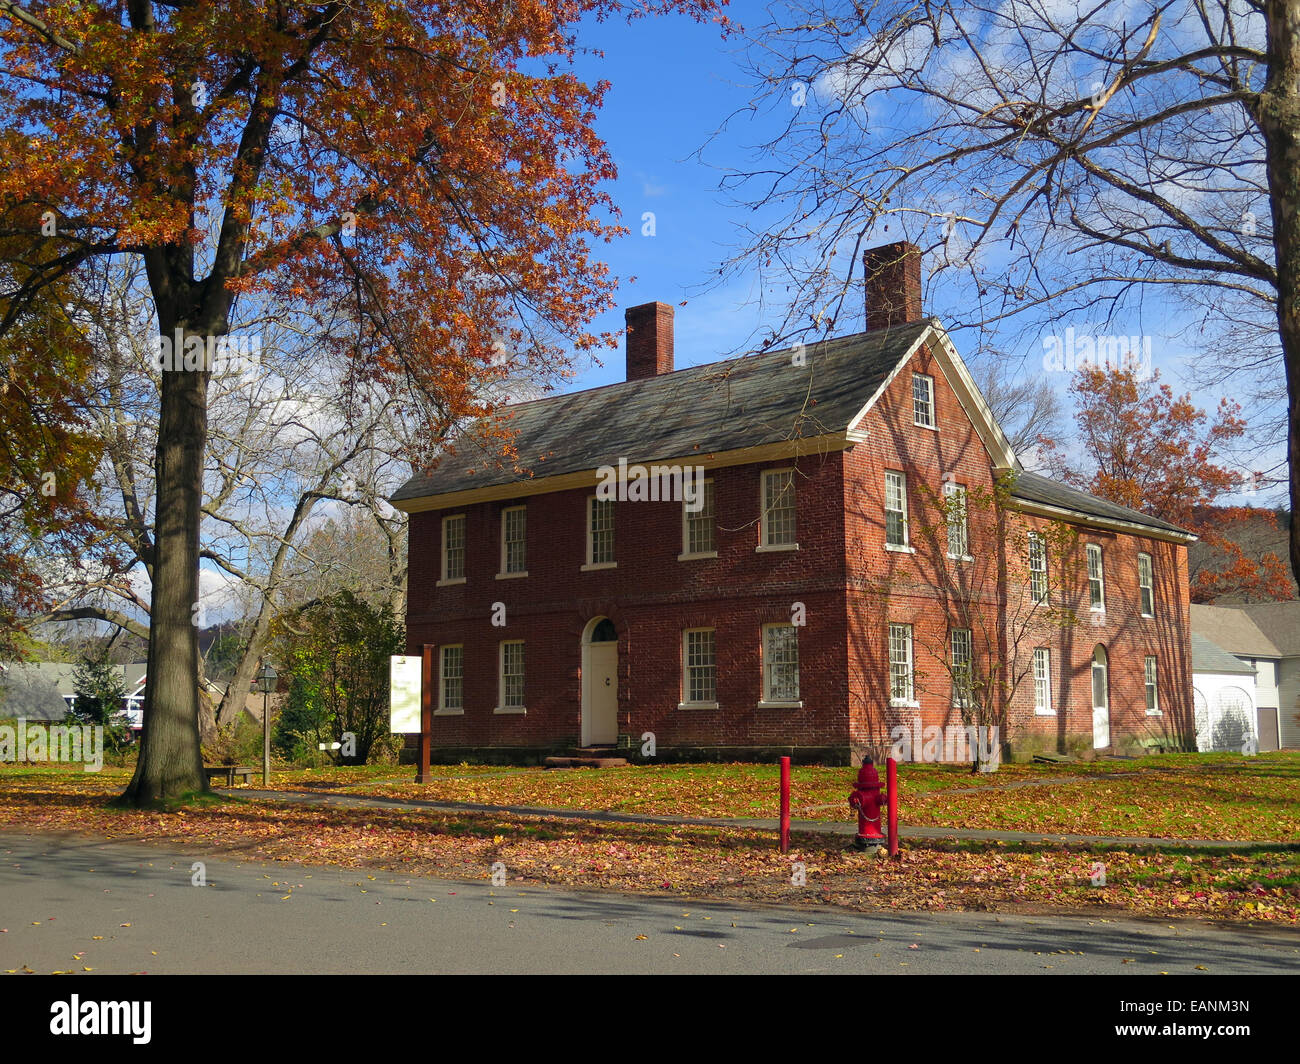 Deerfield, Massachusetts, Historic Deerfield, Old Deerfield, Stebbins Houe, first brick house, 1799. - Stock Image